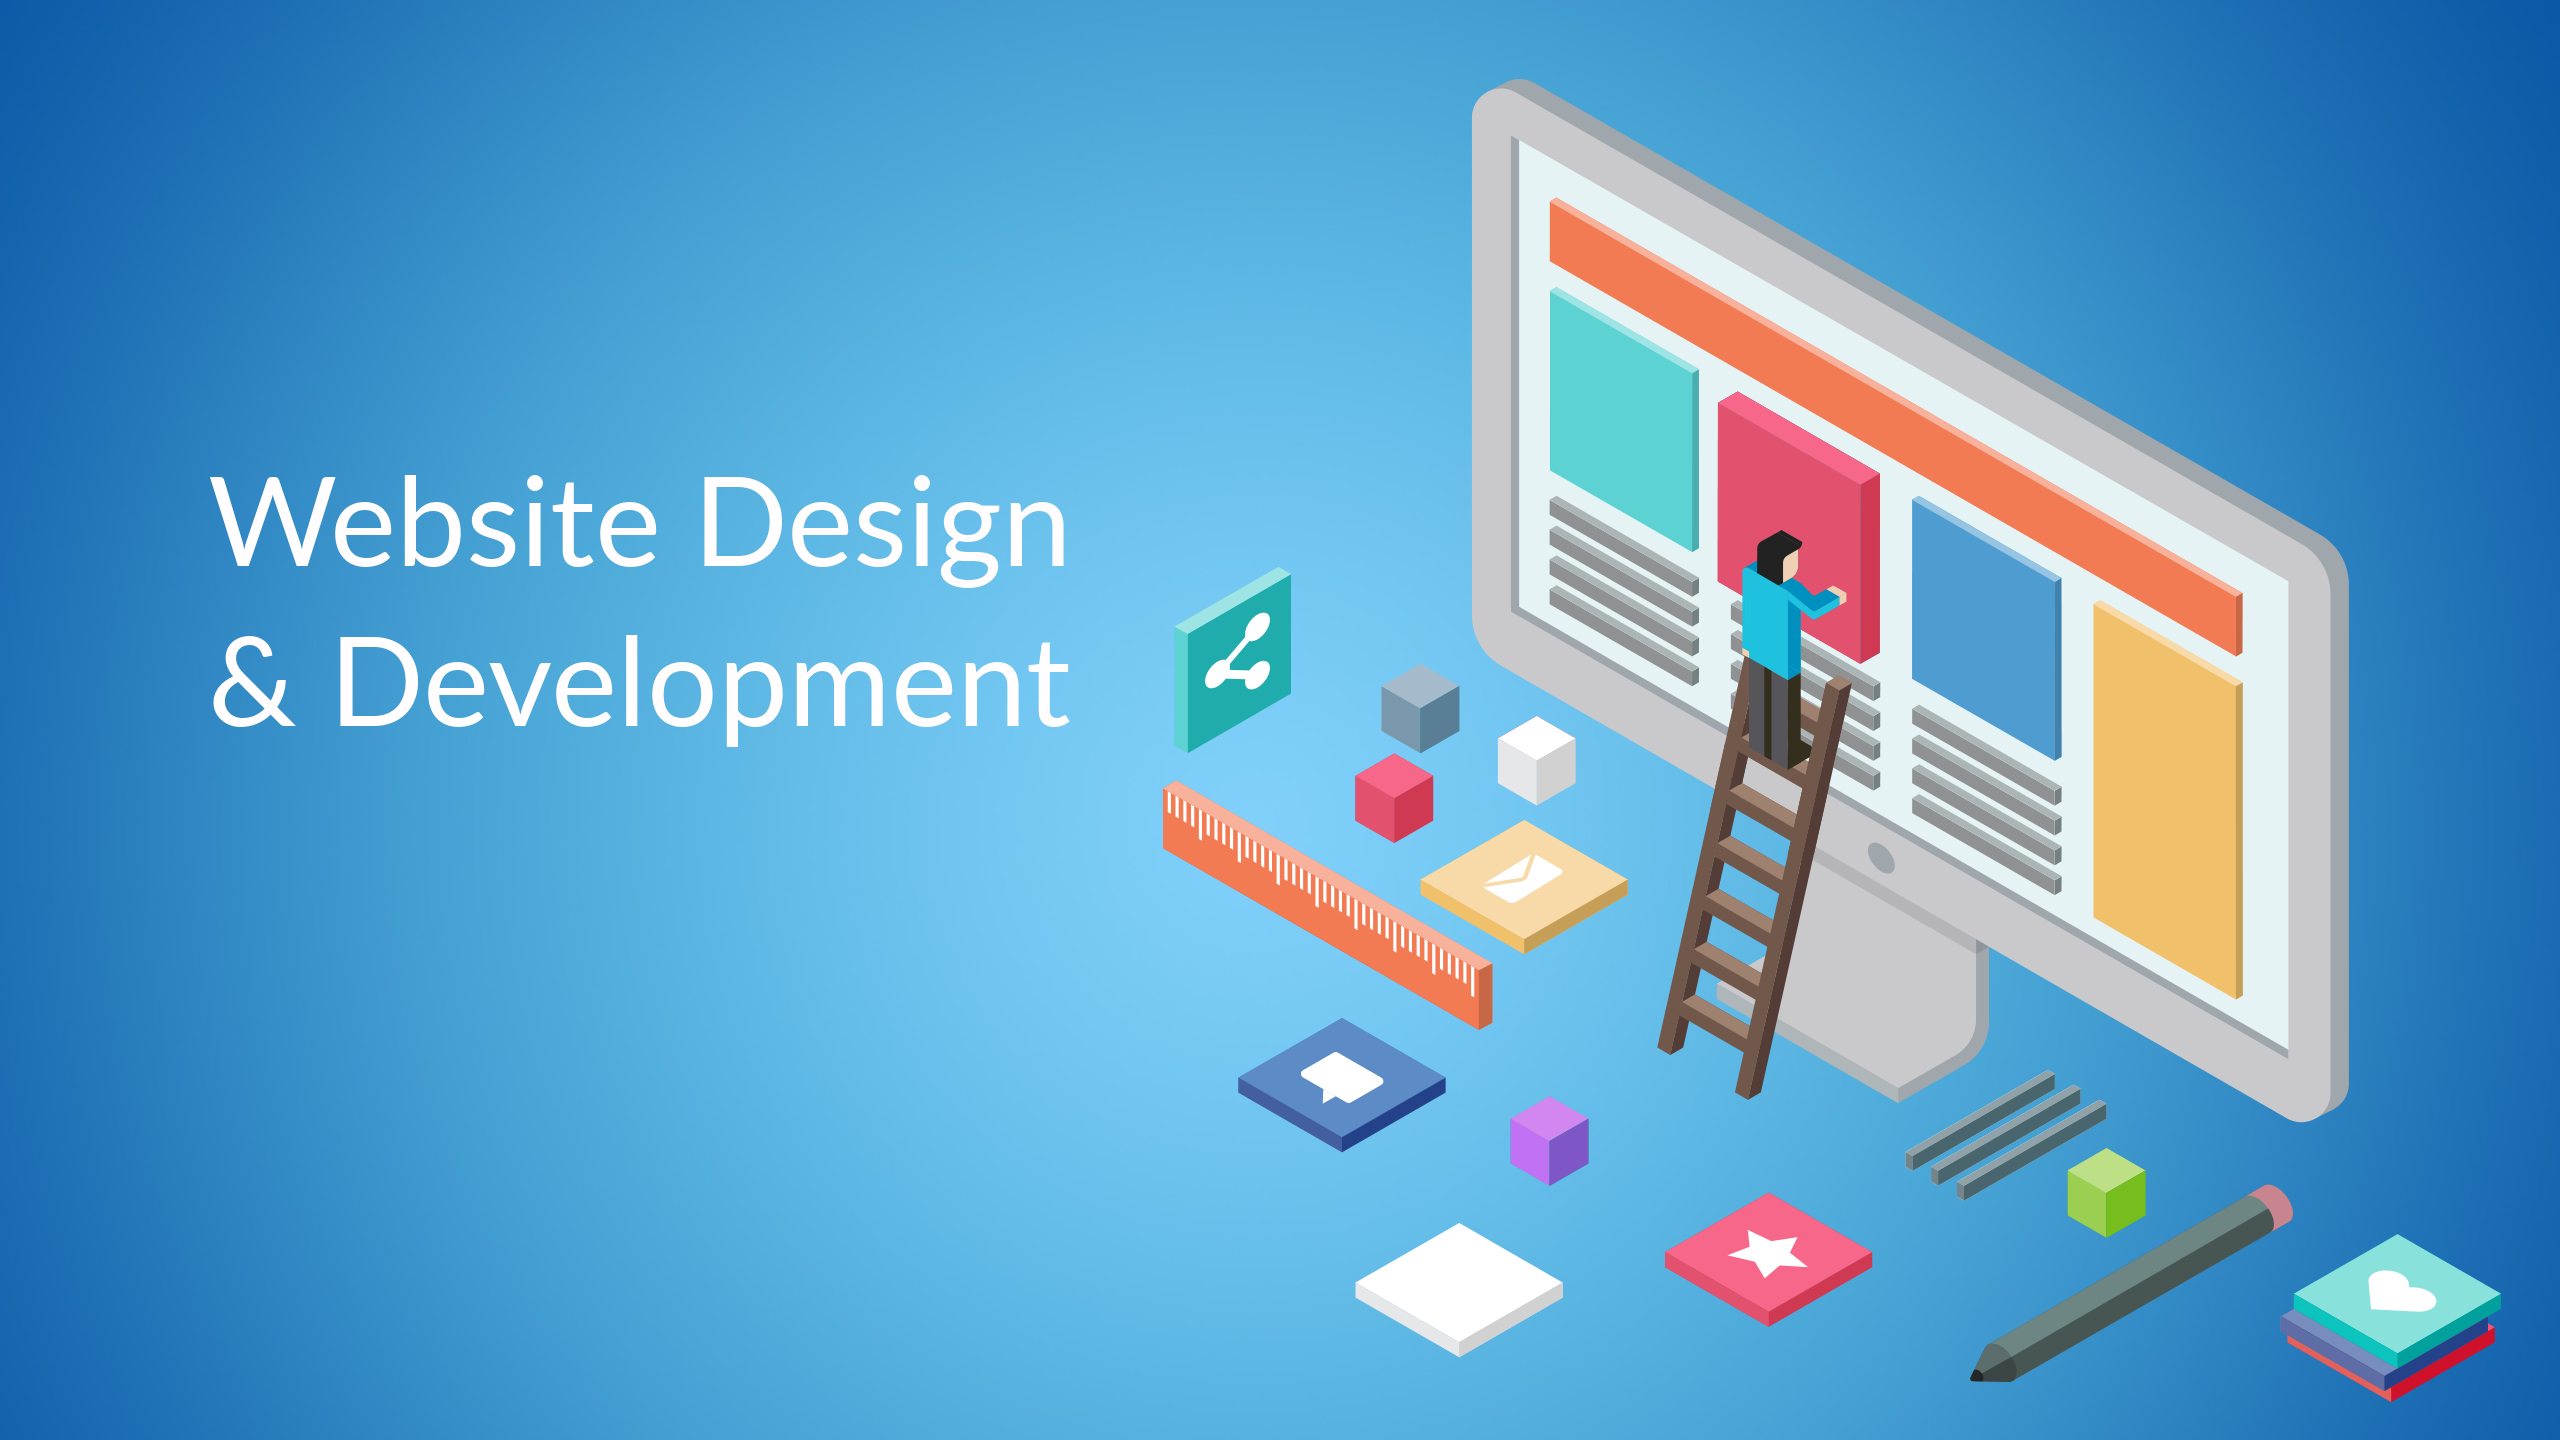 Website Design ||5 Essential Steps for Effective and Successful